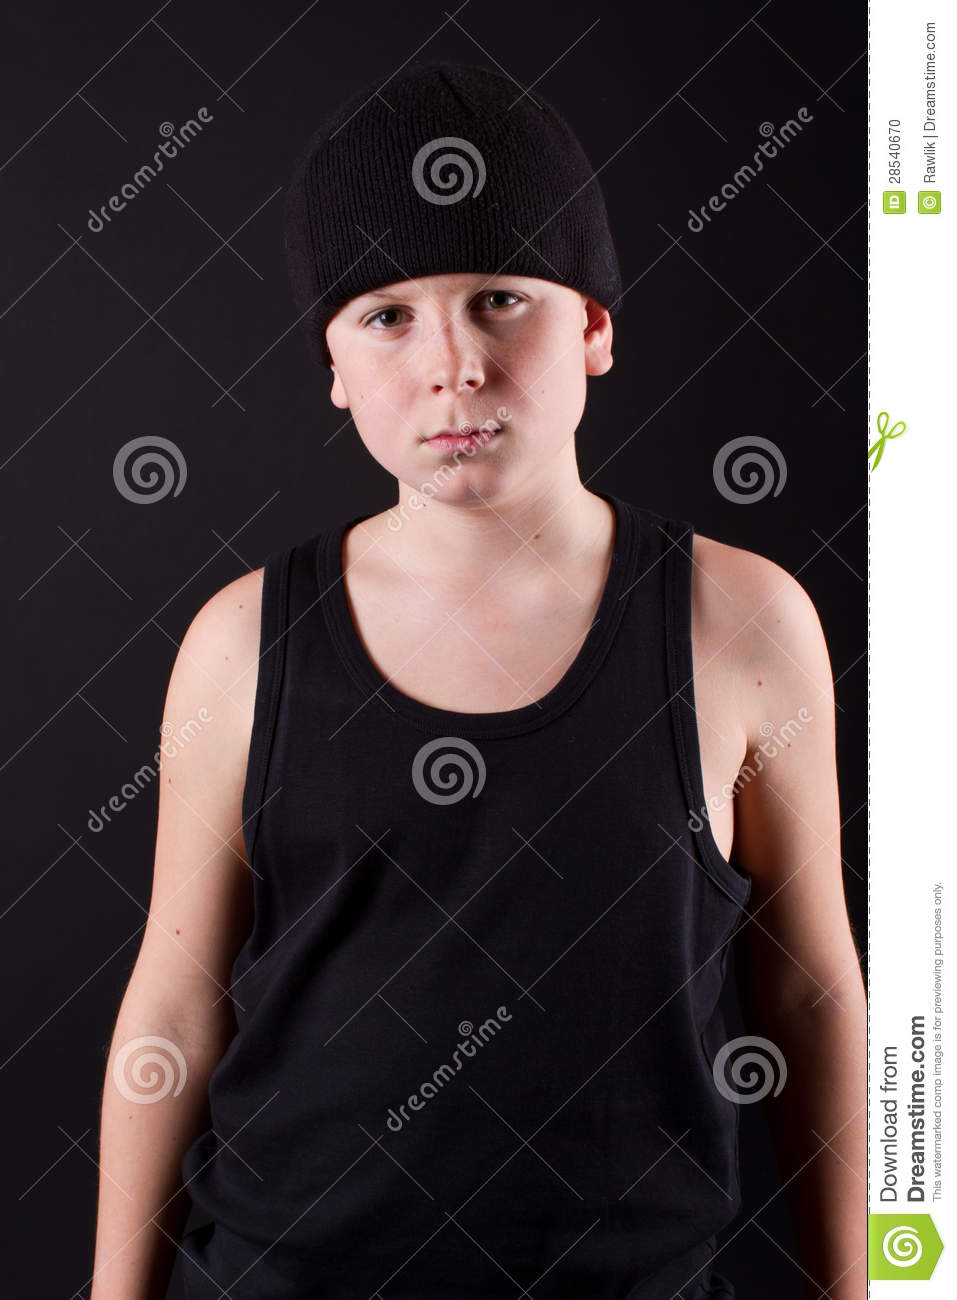 Boy in a black T-shirt and a black hat